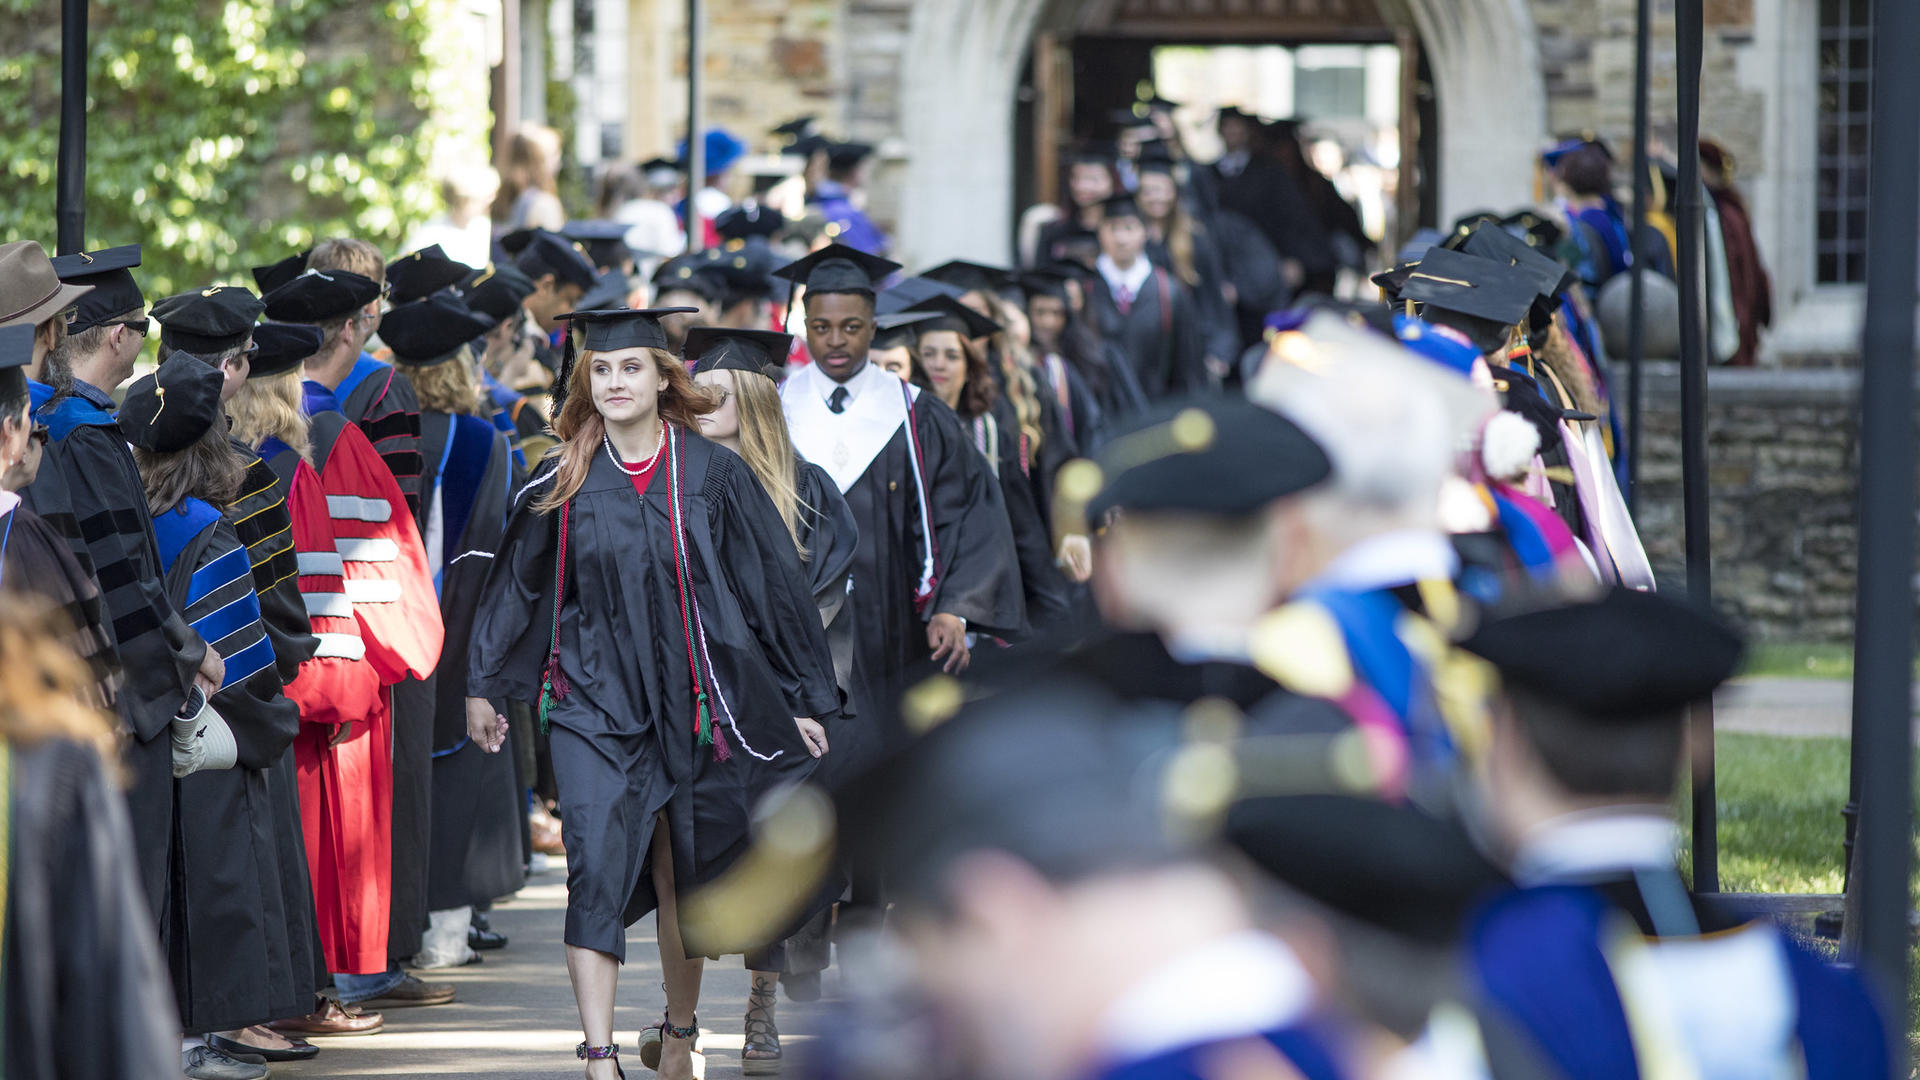 Students marching at commencement